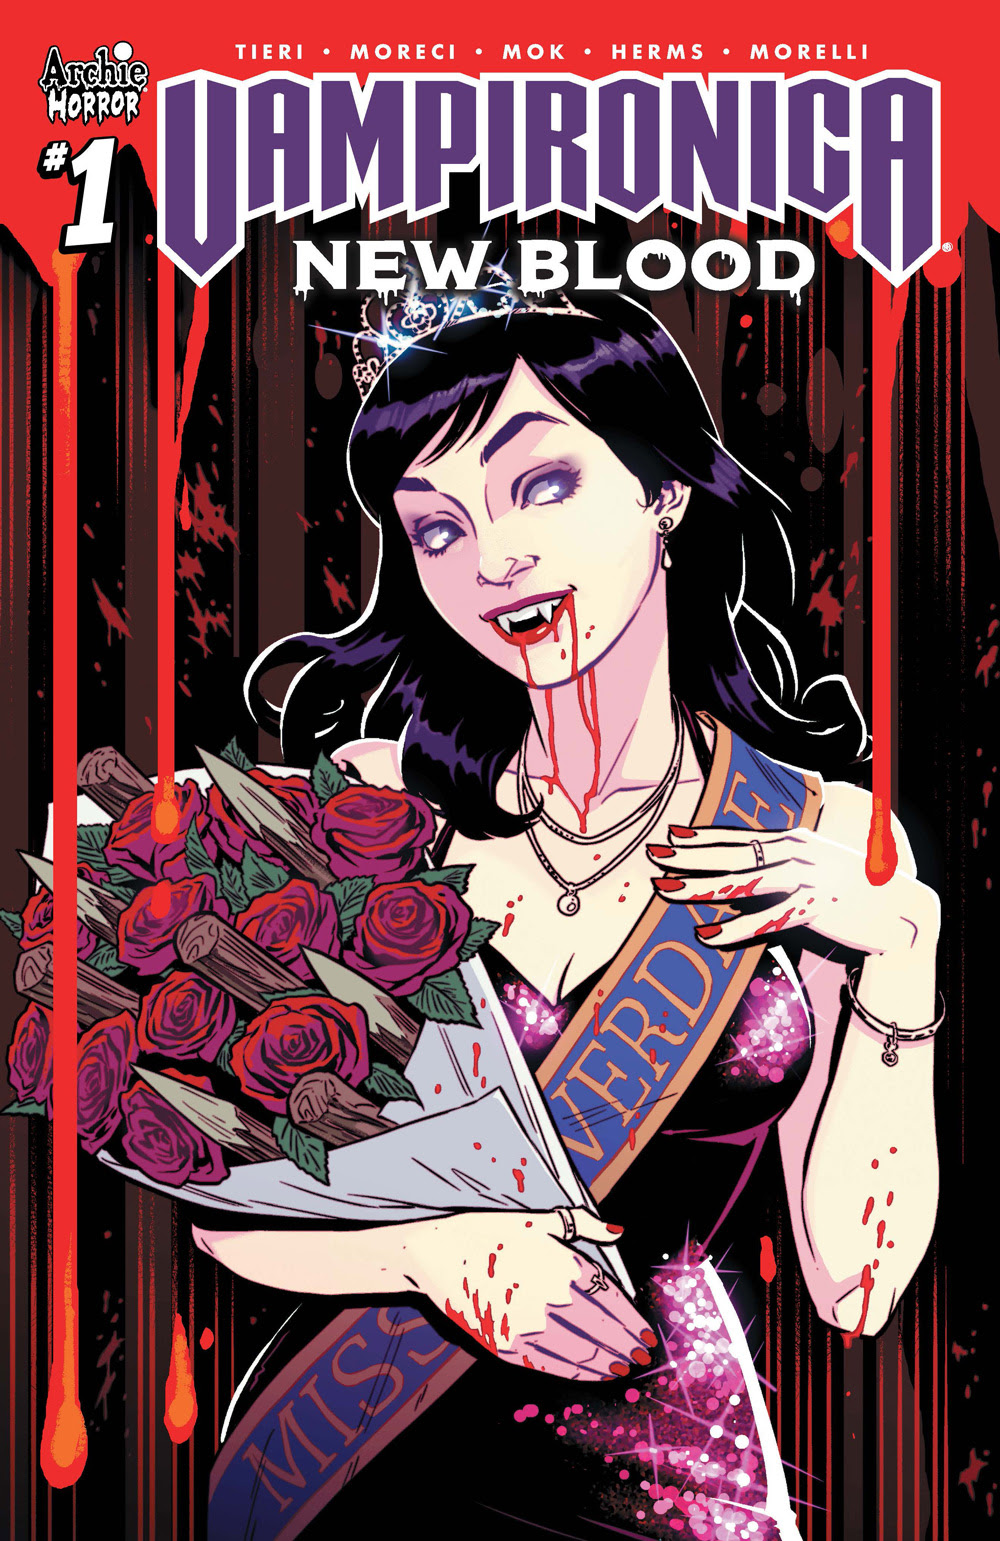 VAMPIRONICA: NEW BLOOD #1: CVR C Isaacs